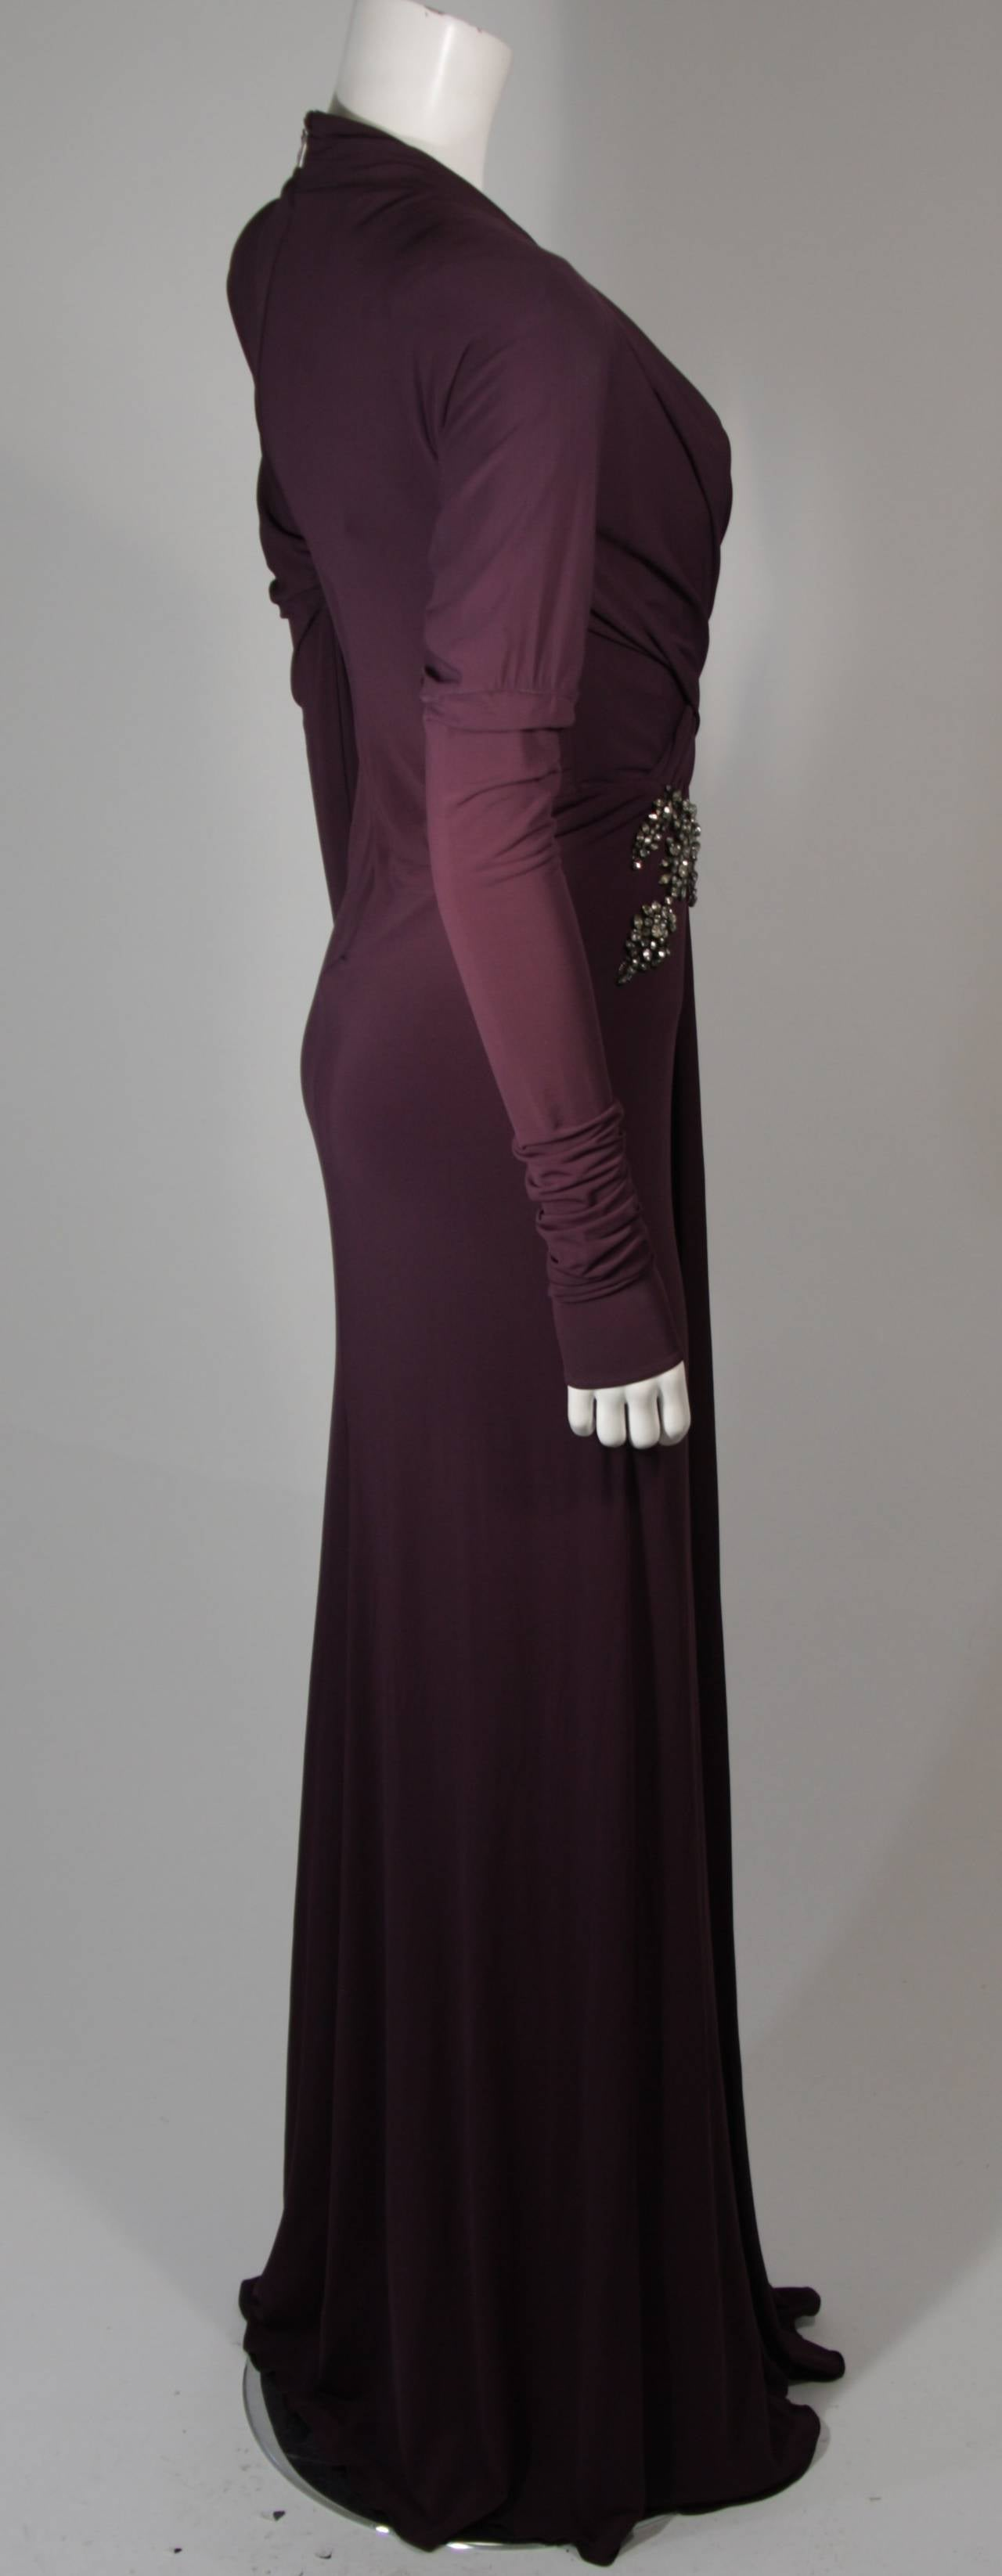 Roberto Cavalli Aubergine Long Sleeve Jersey Gown with Embellishments Size 40 6